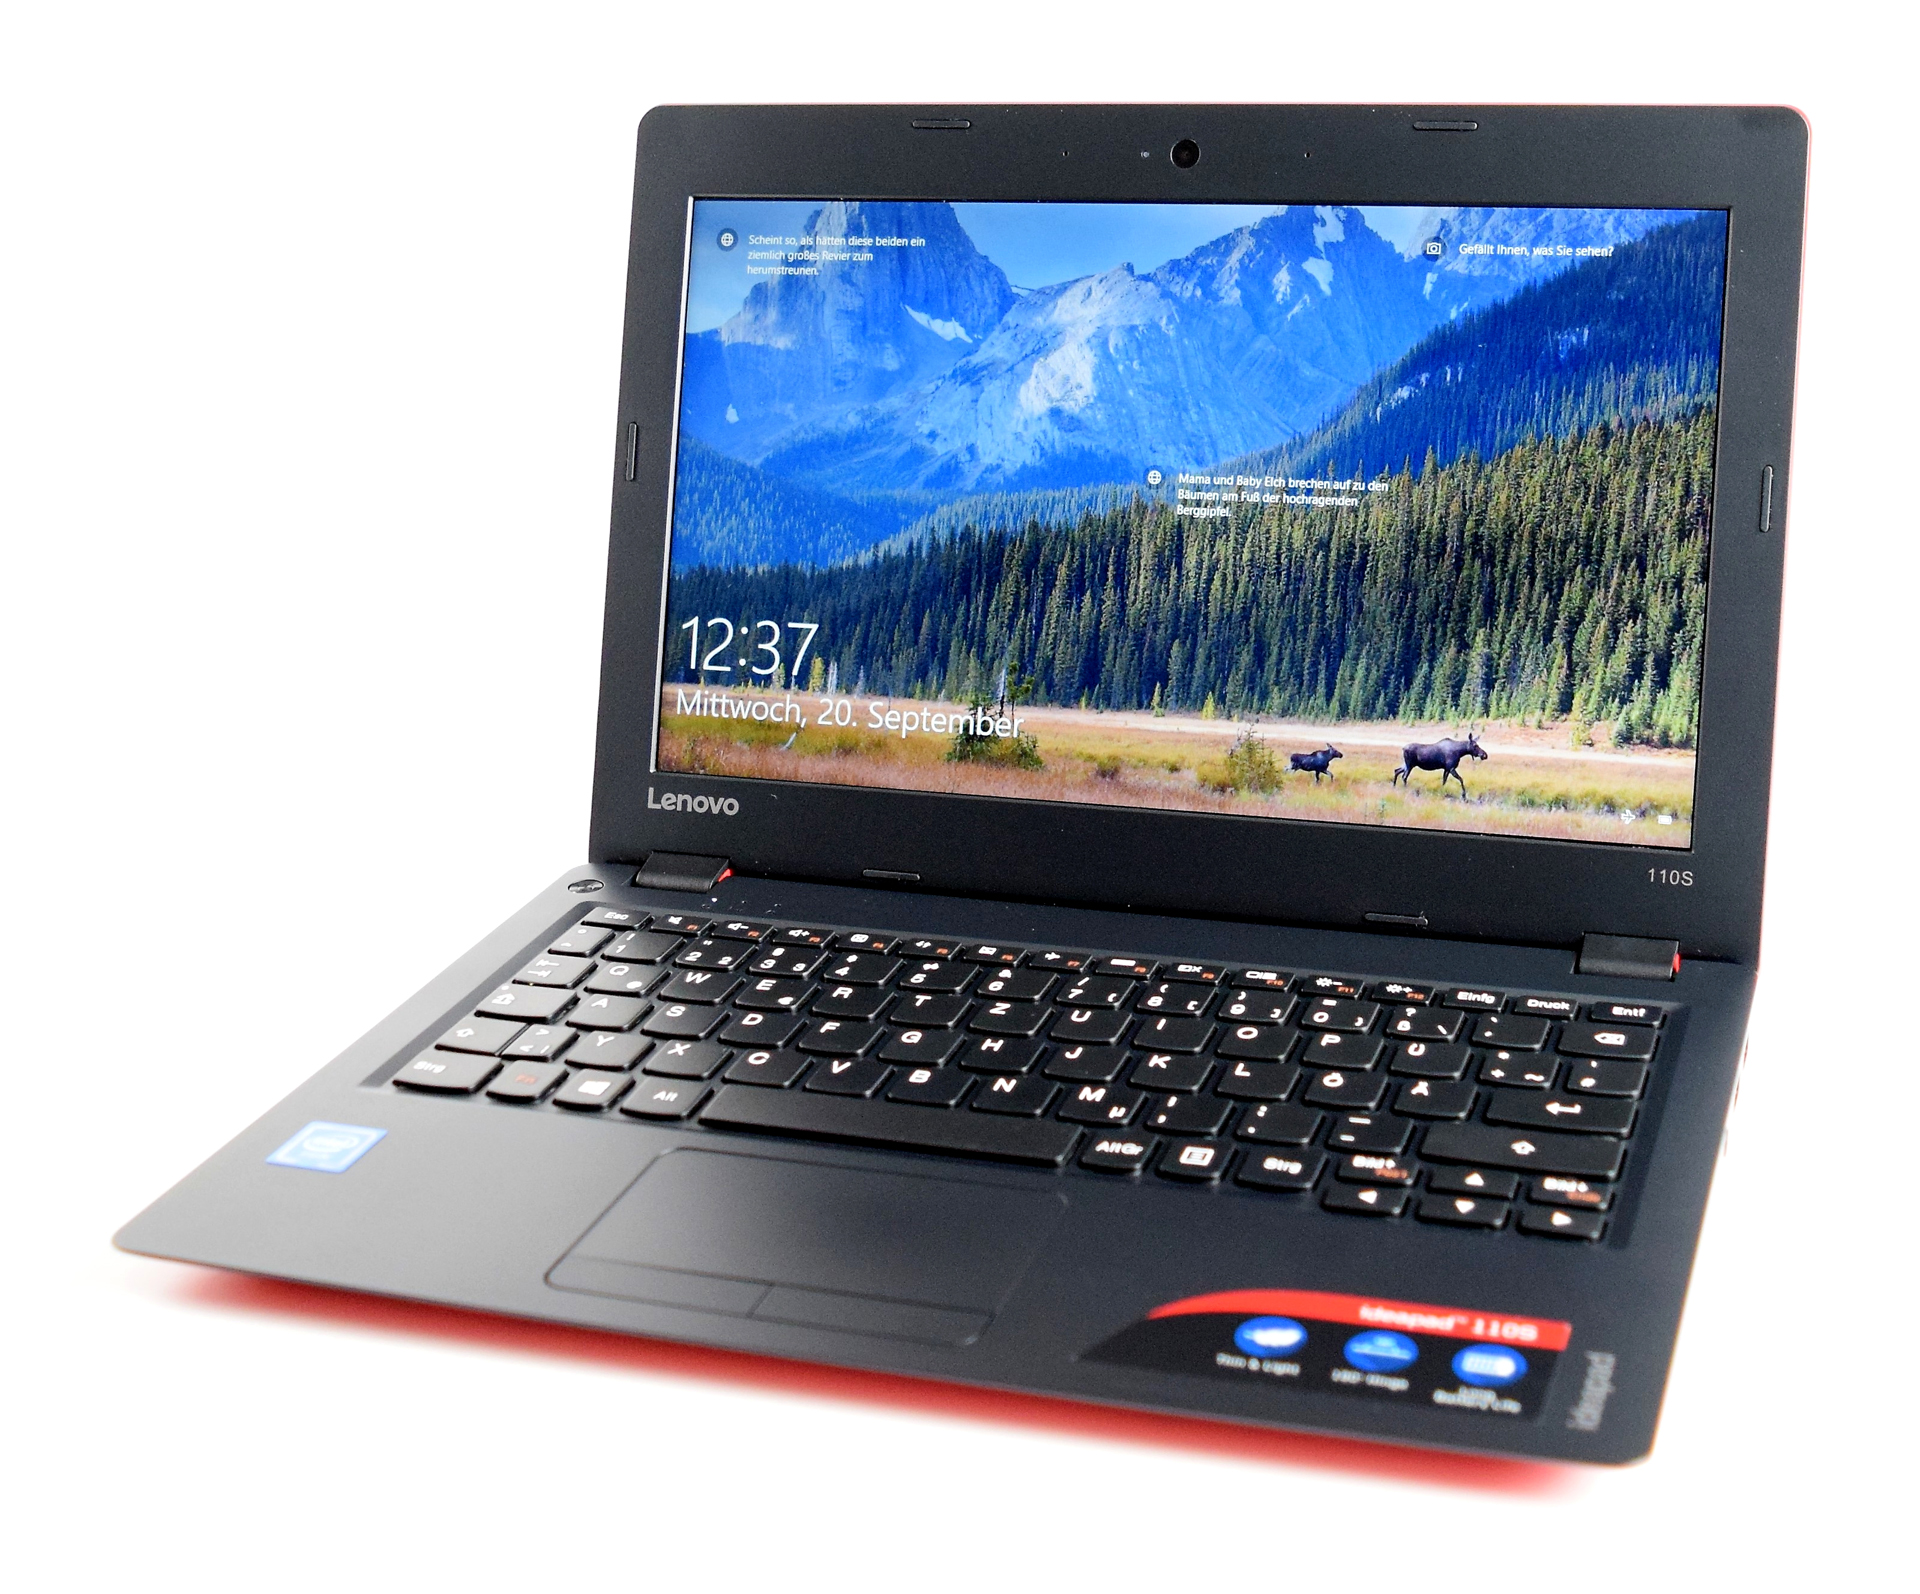 lenovo ideapad 110s n3060 32 gb subnotebook review. Black Bedroom Furniture Sets. Home Design Ideas